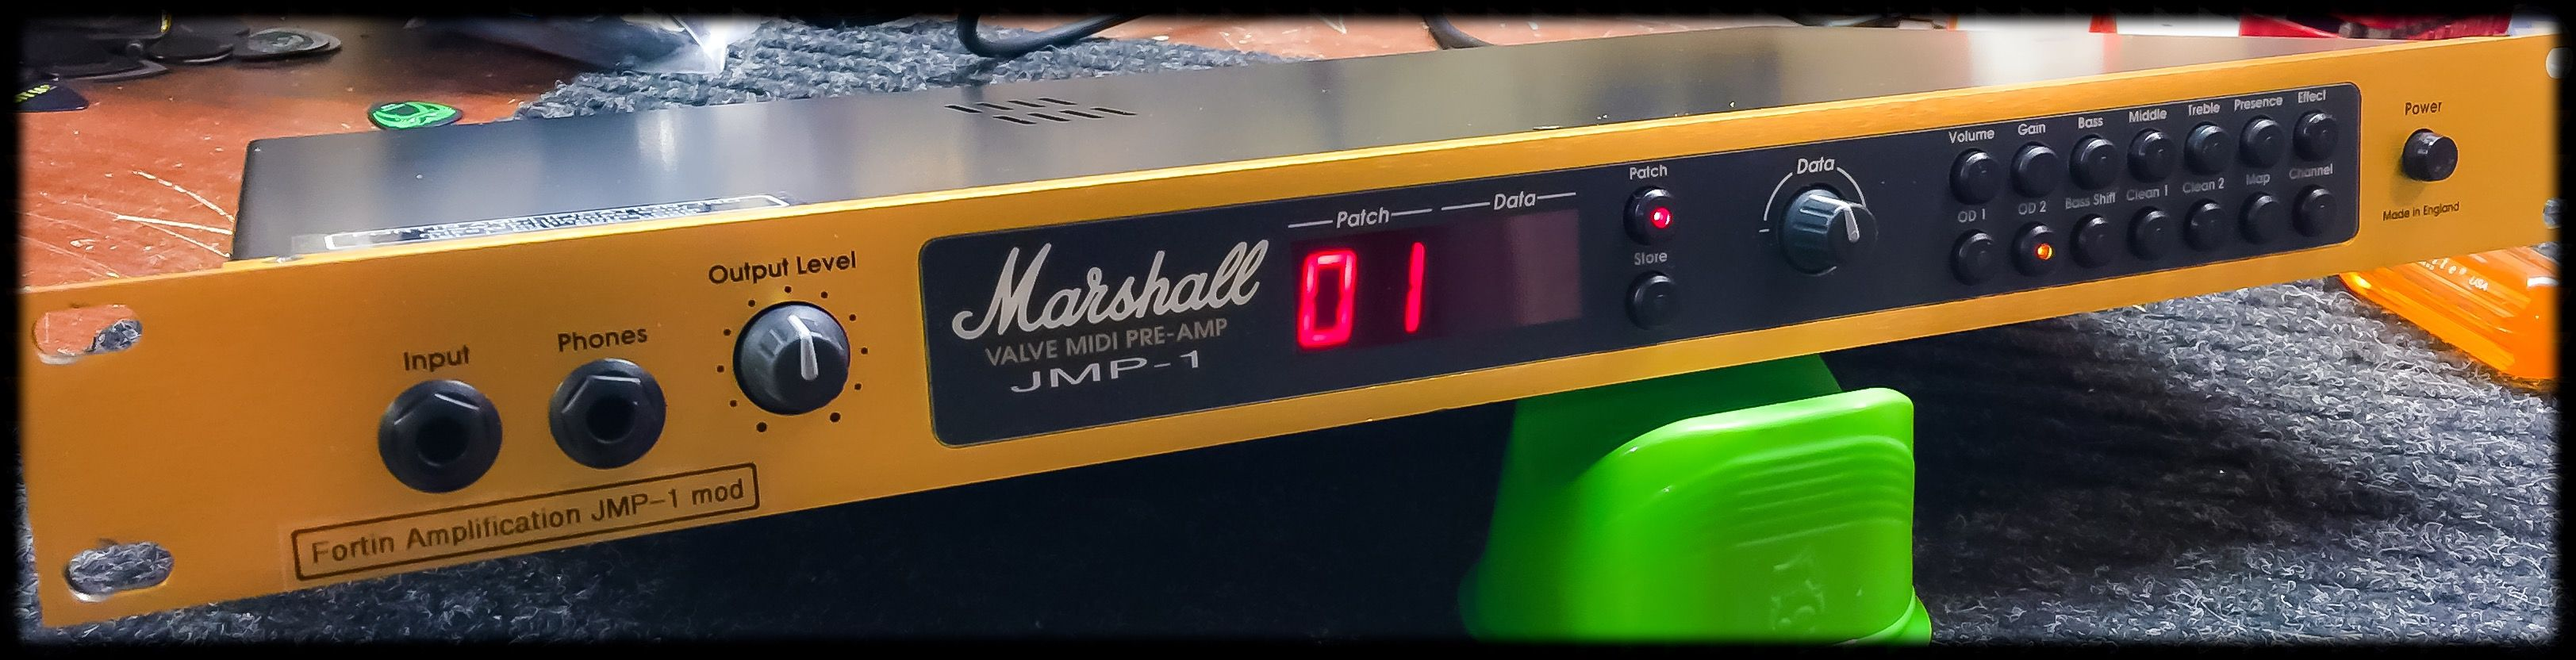 Fortin modded Marshall JMP-1: All modes revoiced, cleans have more